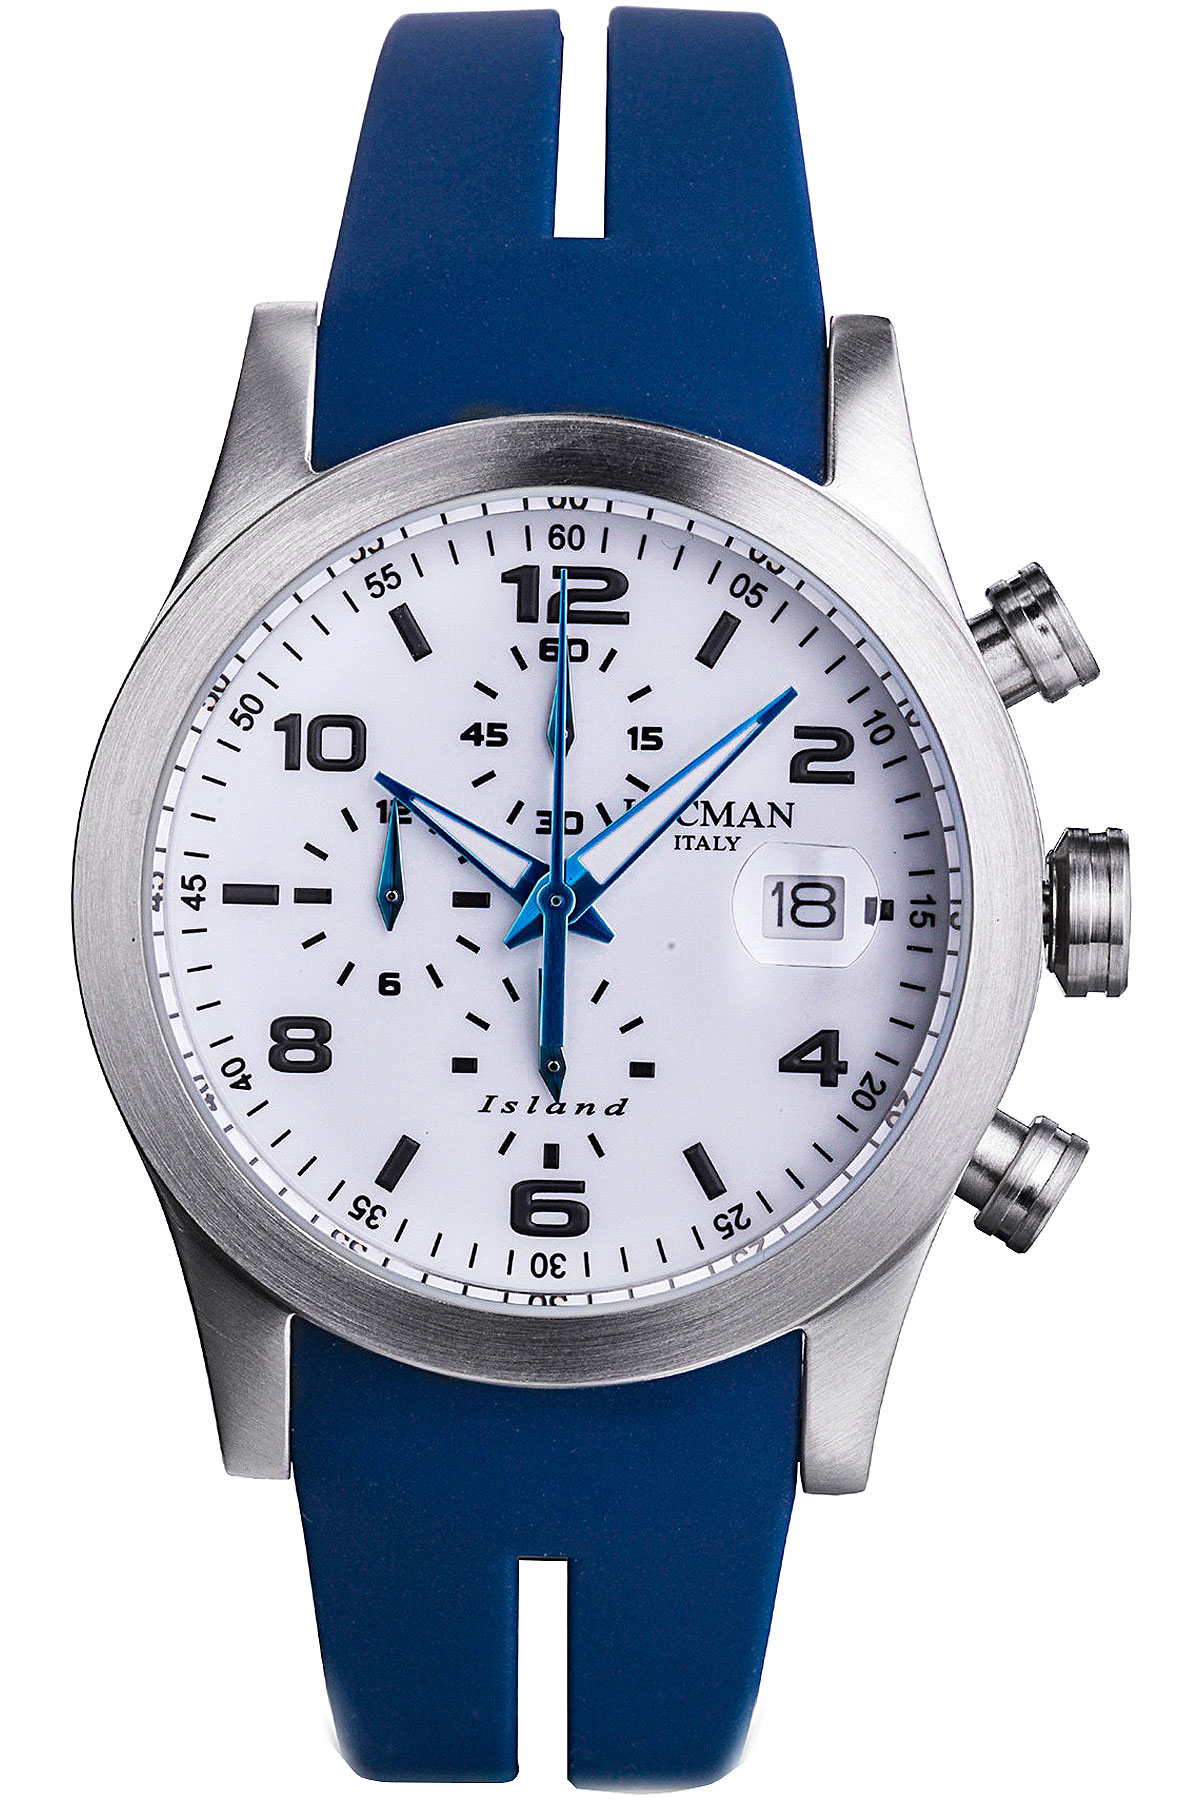 Locman Watch for Men, Blue, Silicone, 2019